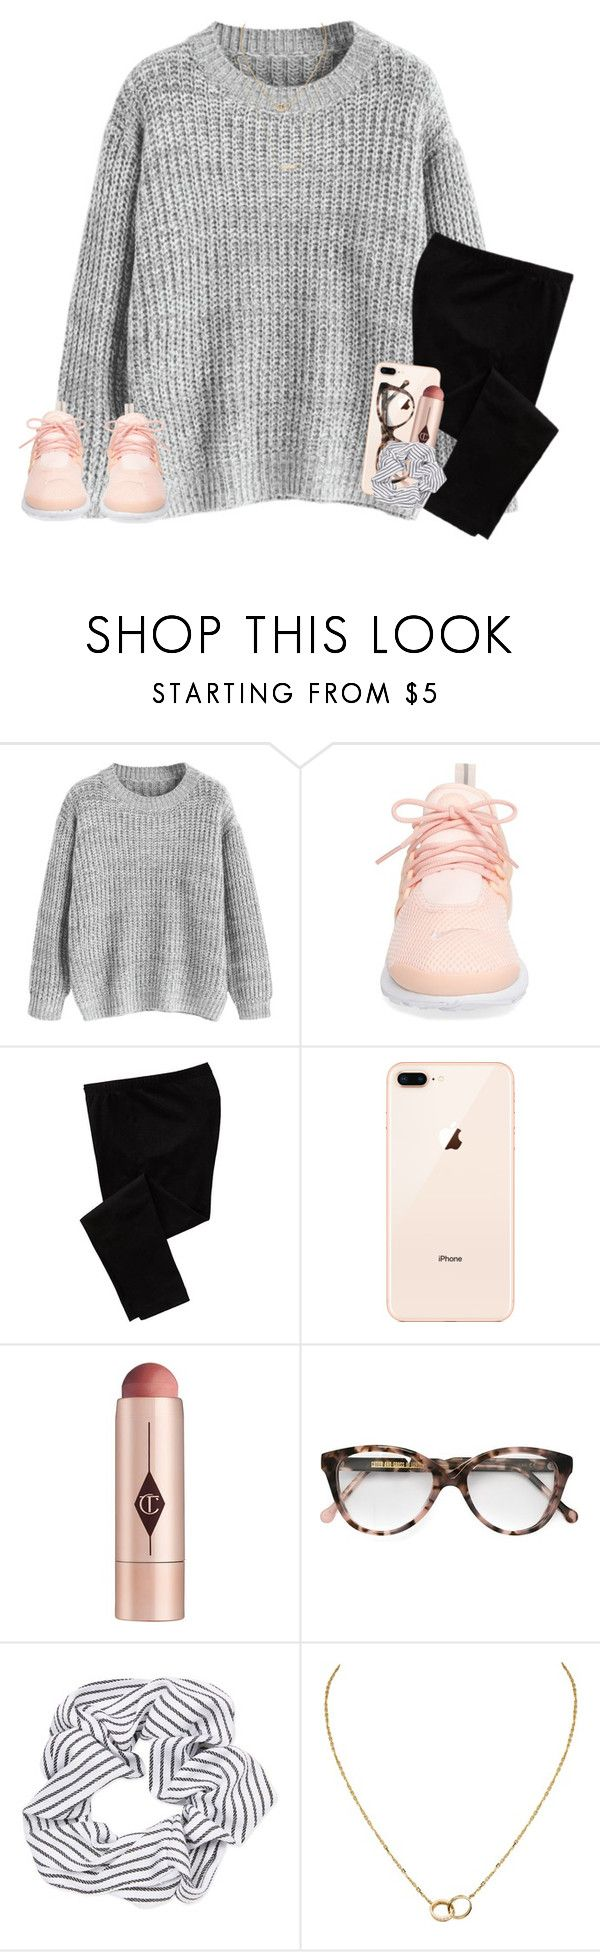 """:)"" by maggieholland00 ❤ liked on Polyvore featuring NIKE, Old Navy, Charlotte Tilbury, Cutler and Gross, Topshop, Cartier and Gorjana"